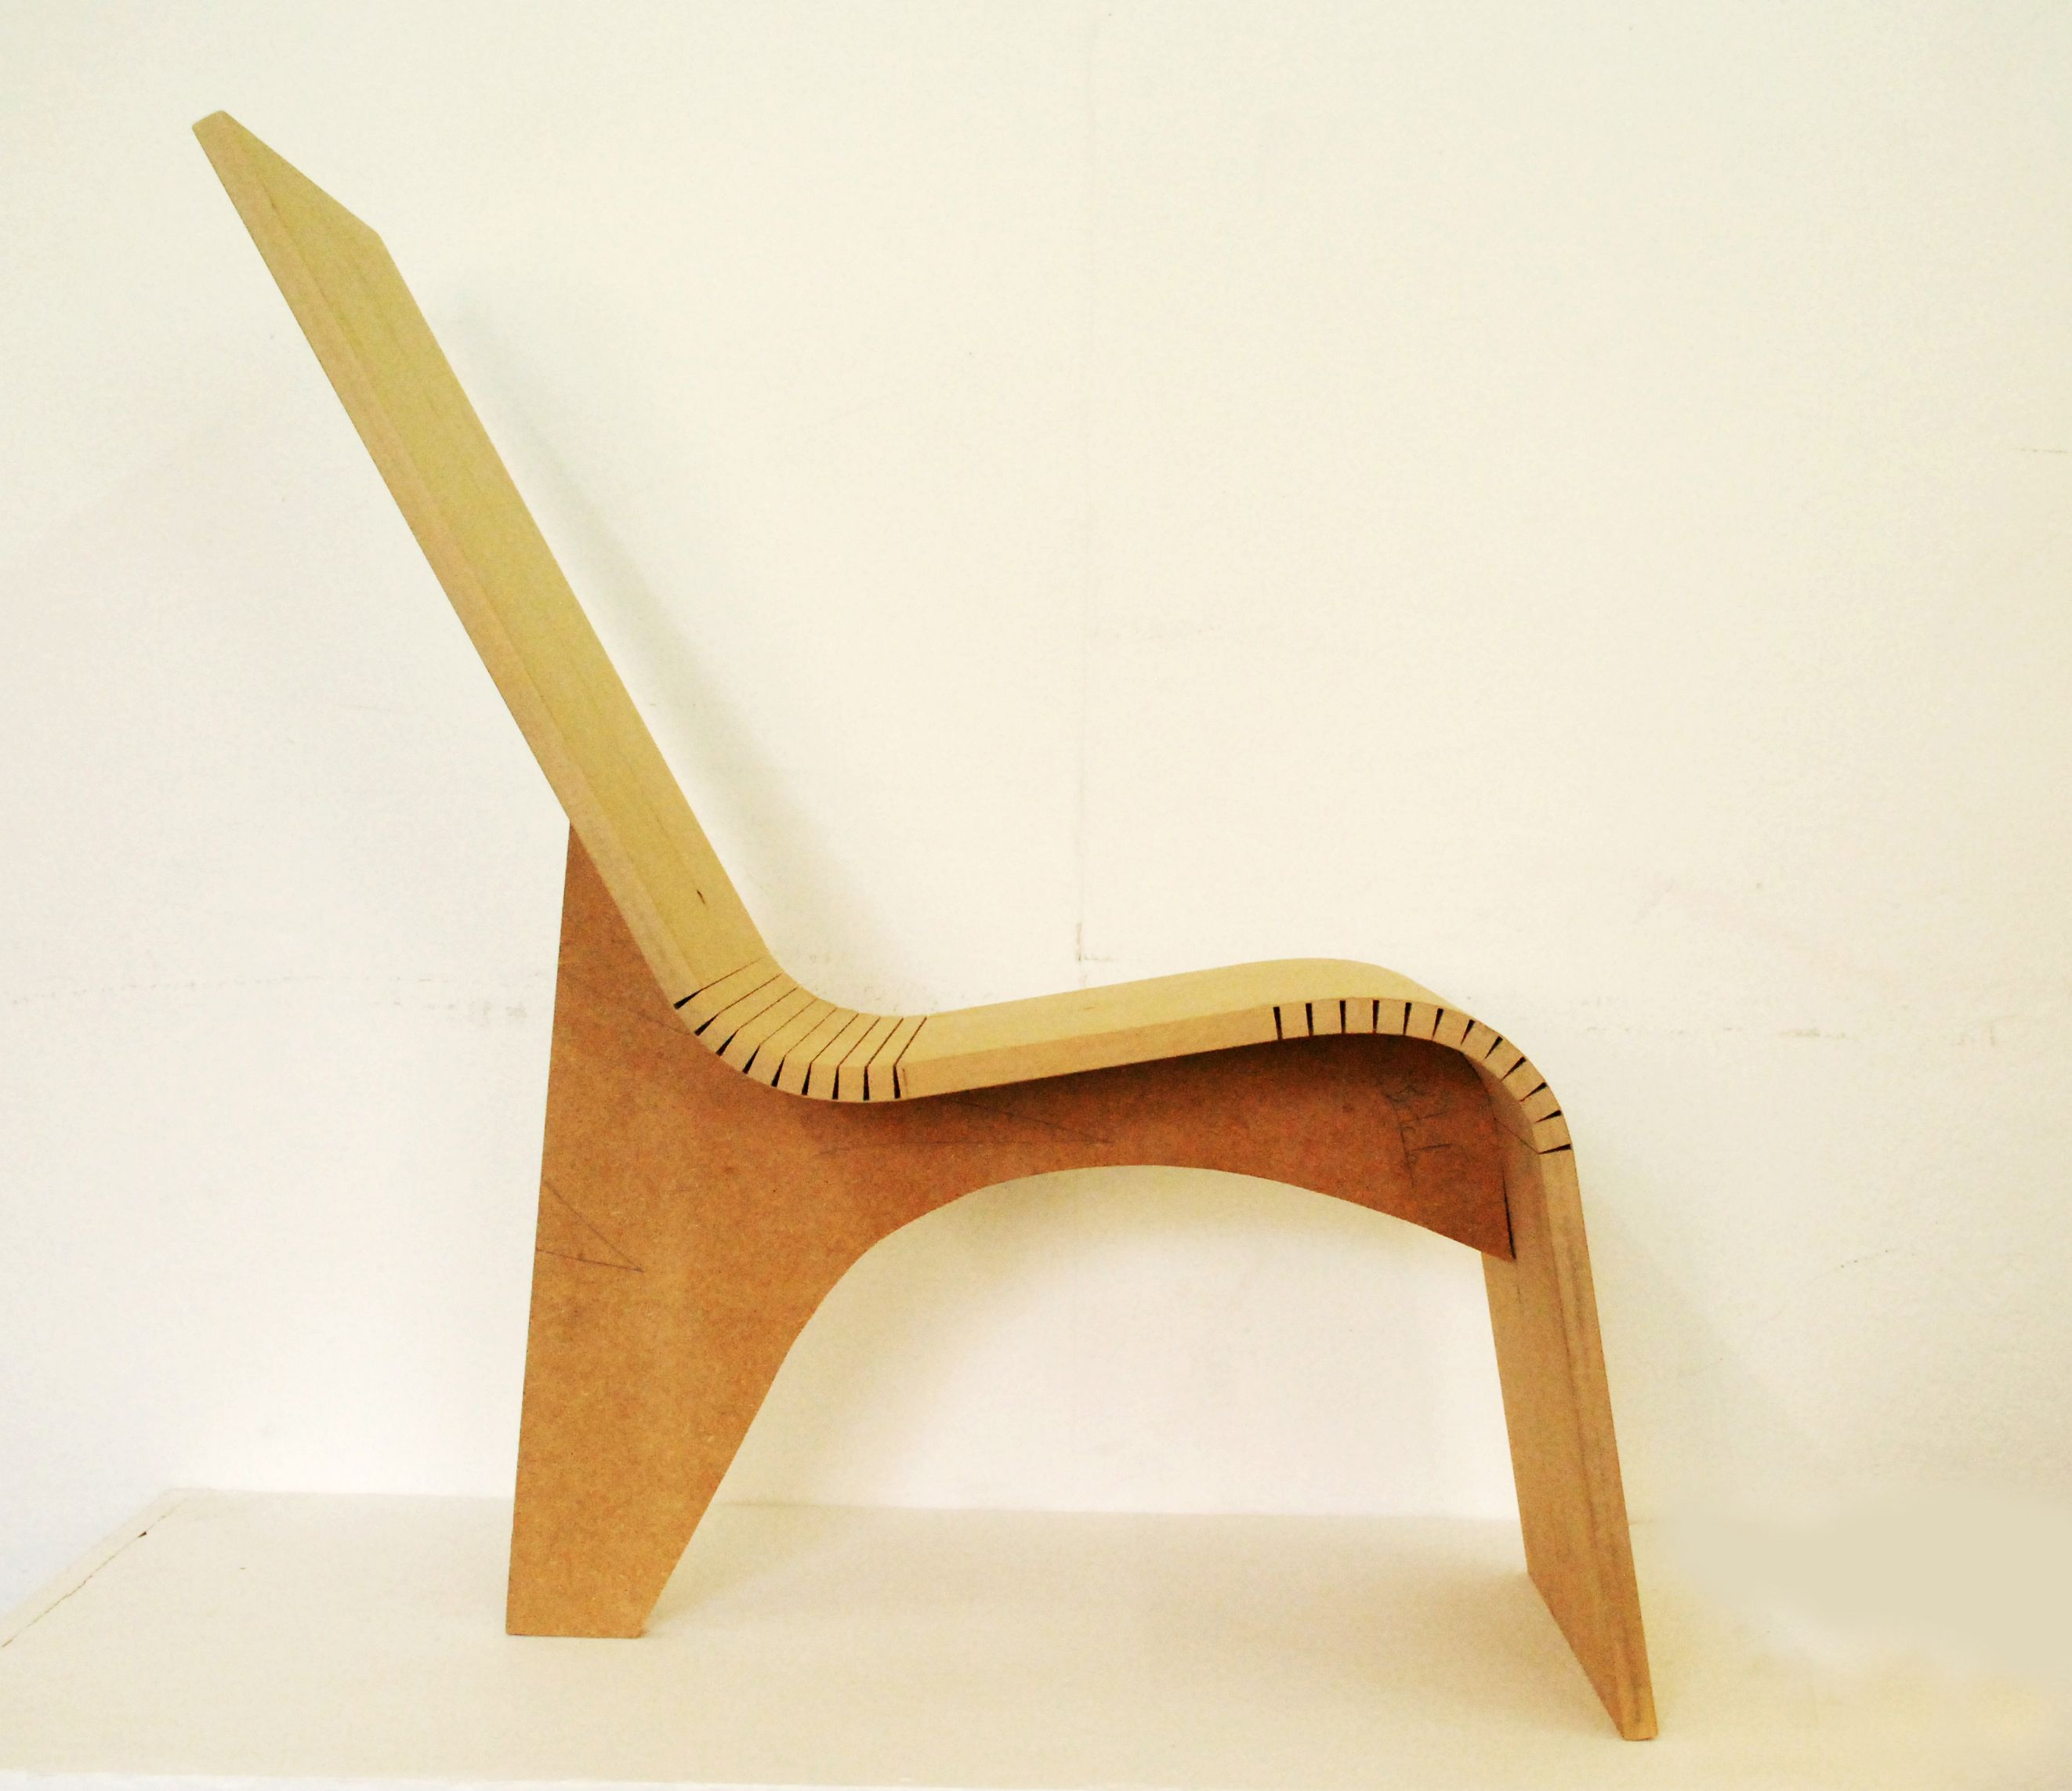 Bent Plywood Chair - Creative kerf design for your home furniture and accessories bay city plywood cabinets kerfed